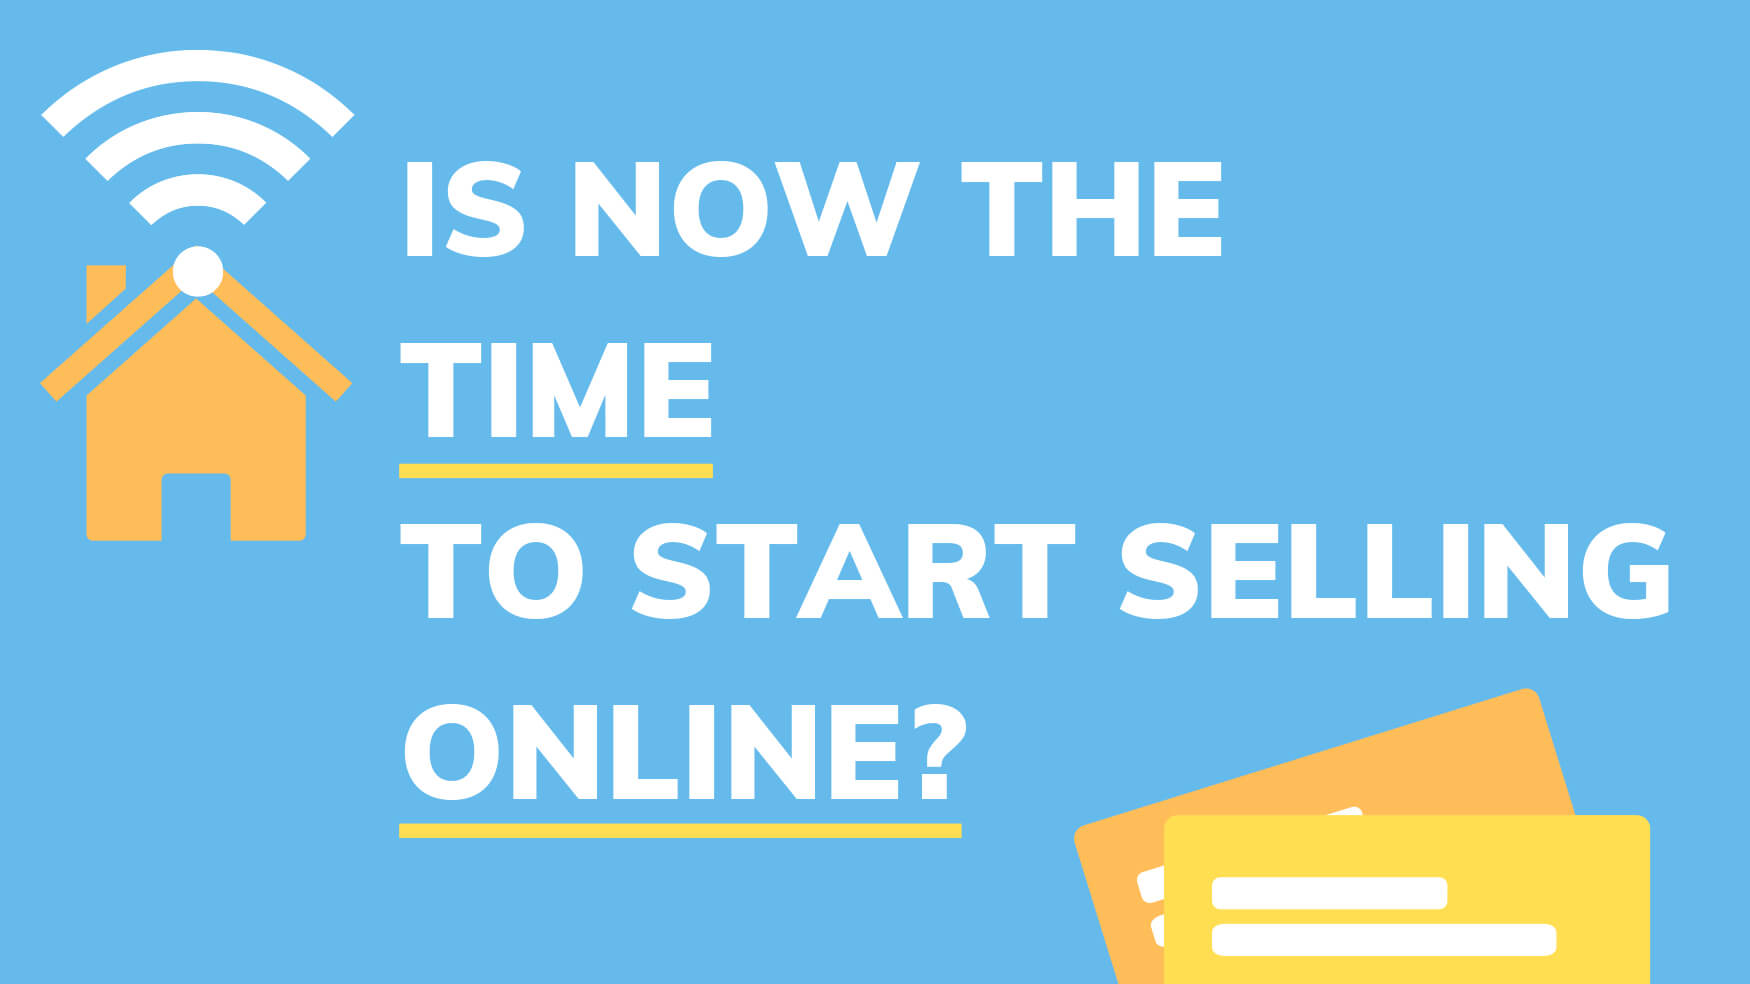 What is eCommerce and is now the time to start selling online?